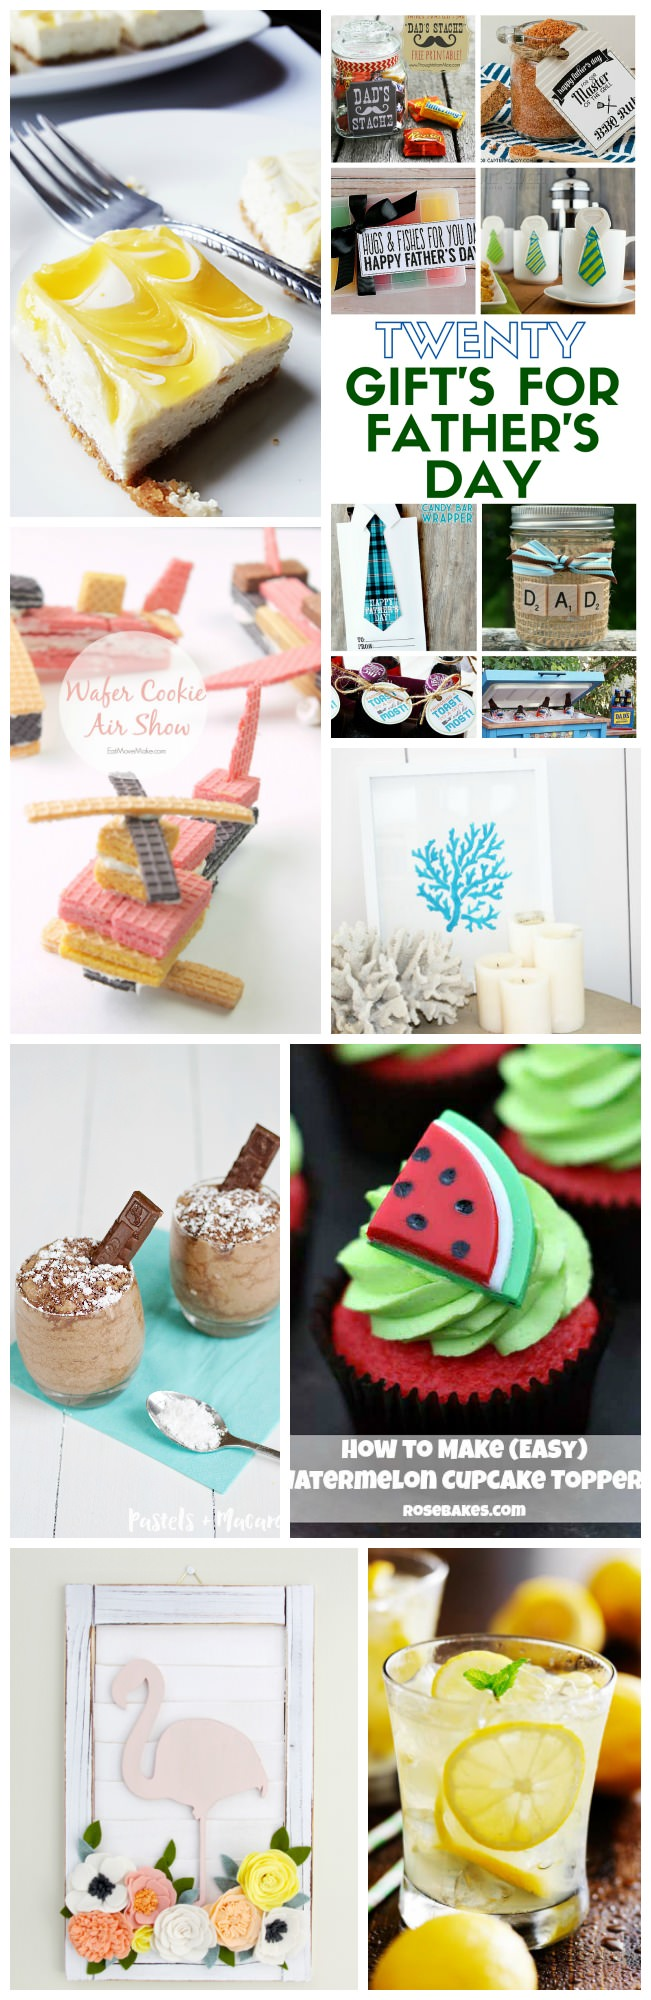 School's out for Summer! It's time for Dad's and Grads with these June Treats and Crafts that you can enjoy during your down time.